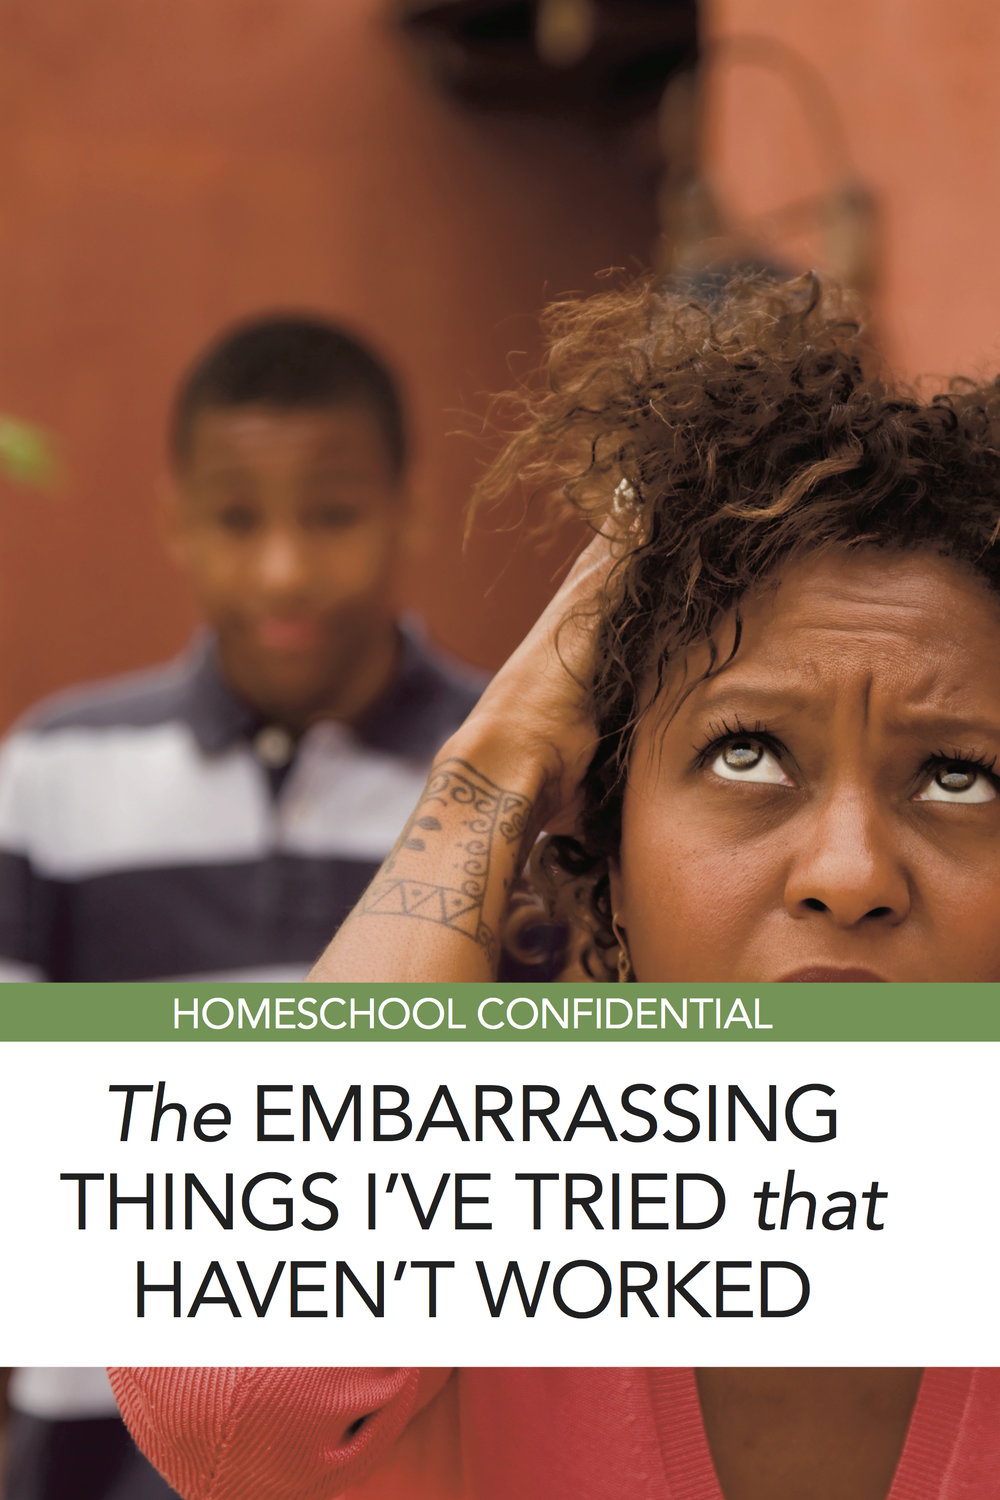 The Embarrassing Things I've Tried That Haven't Worked